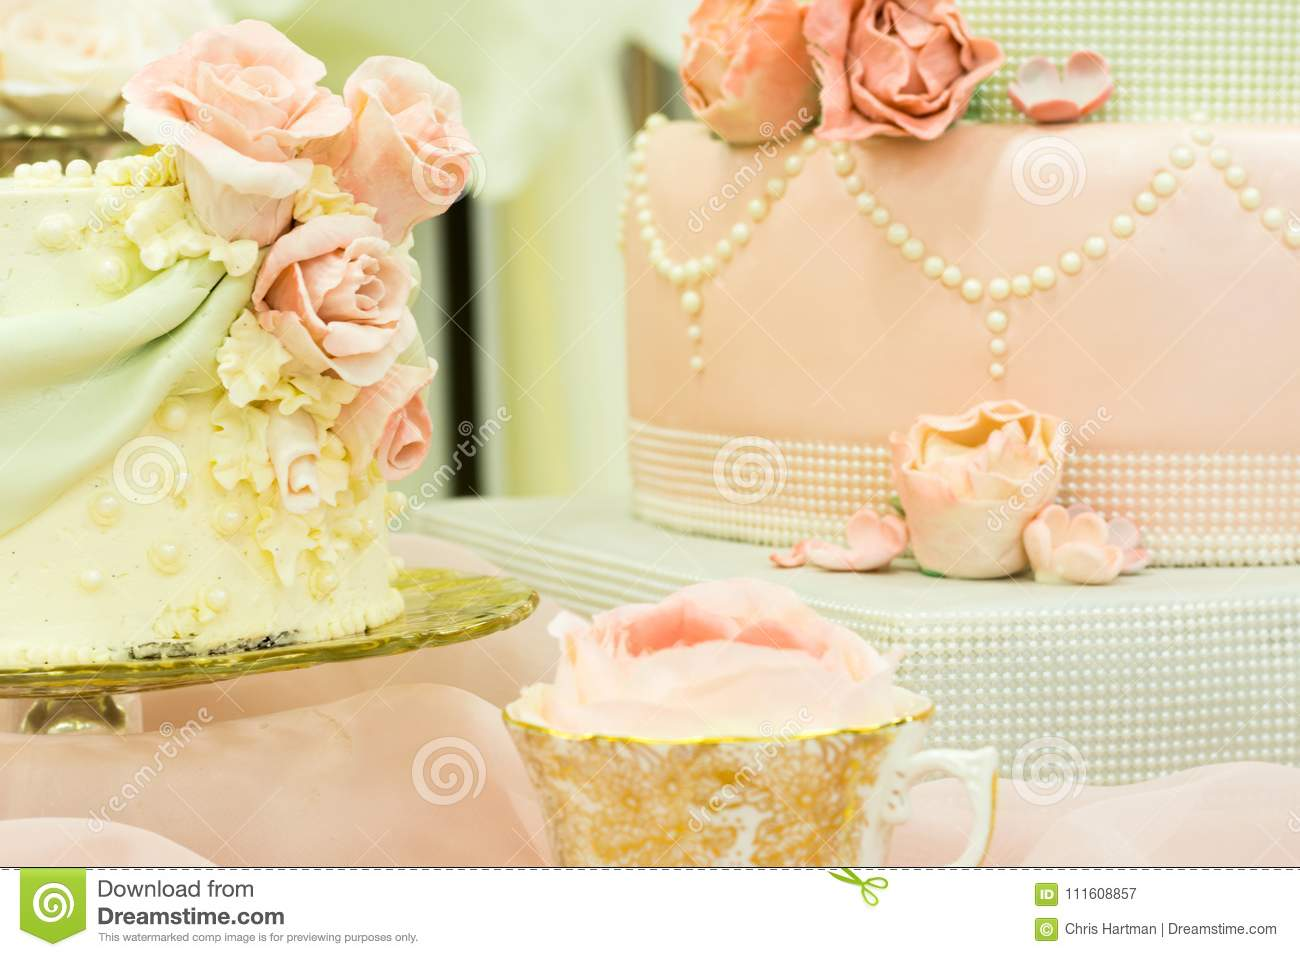 A Fancy Wedding Cake Display Table Stock Image - Image of dessert ...